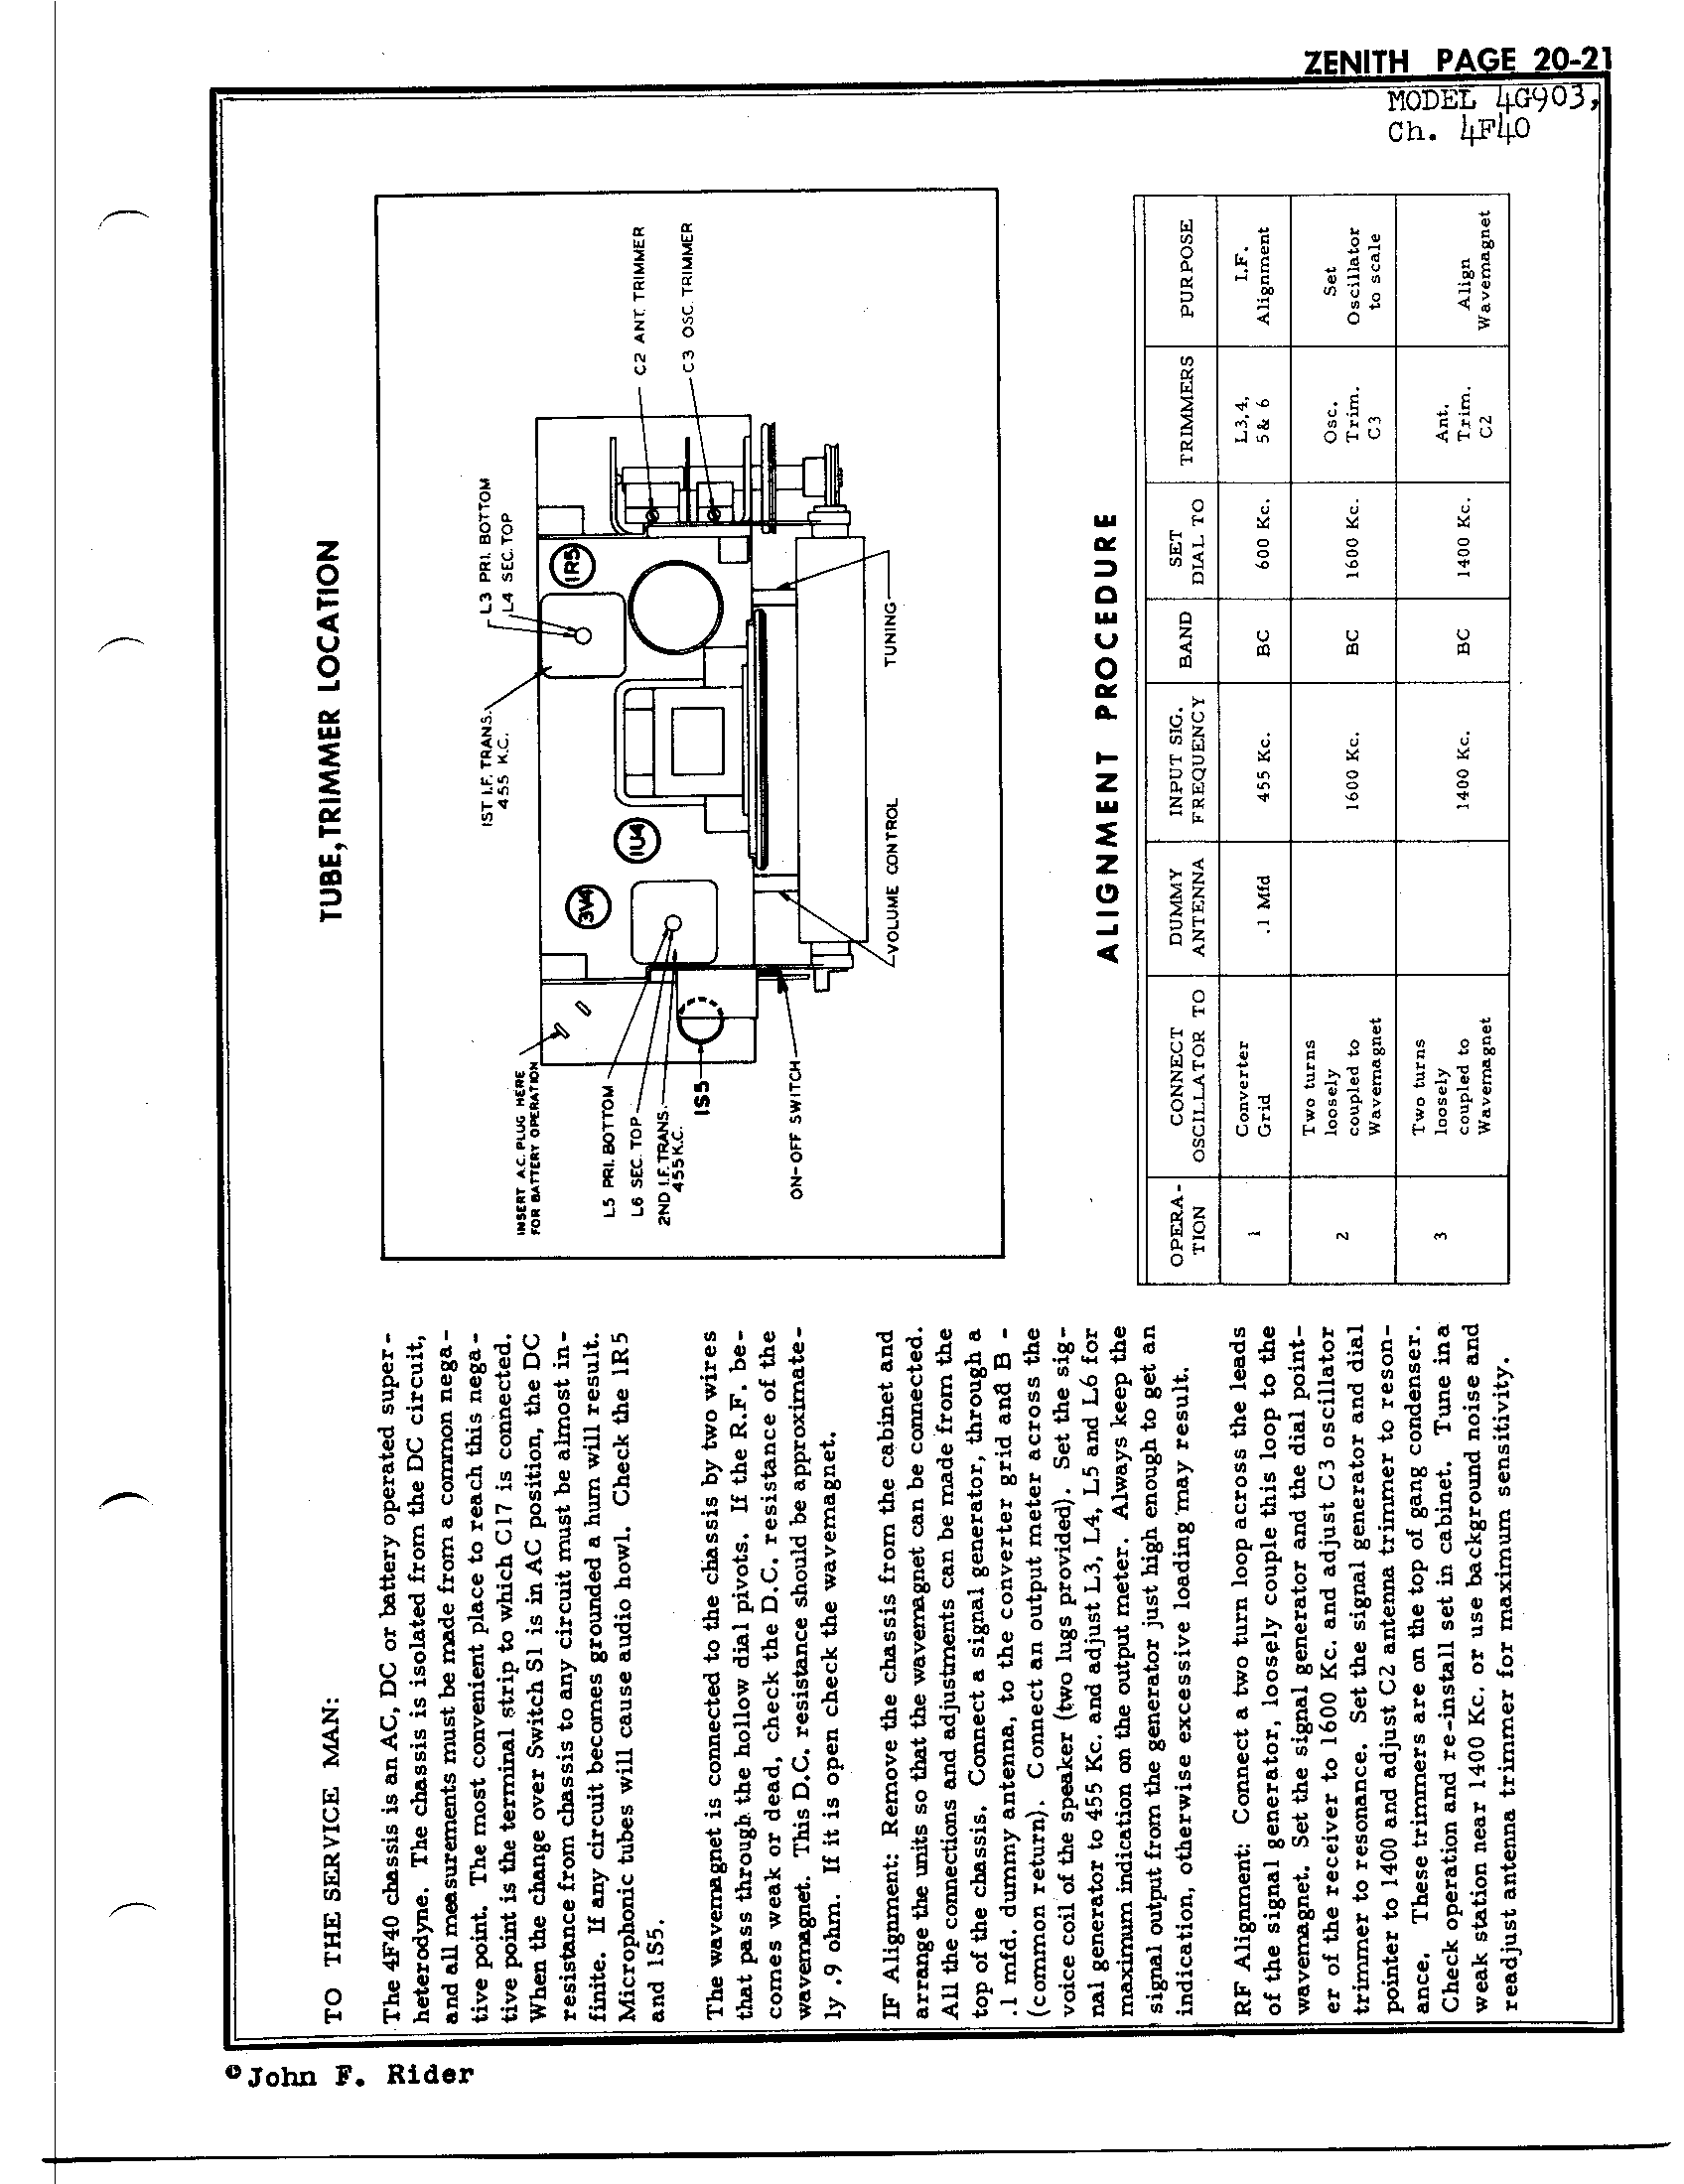 Zenith Radio Corp 4g903 Antique Electronic Supply. Page 1 6568 Kb Rider Manual Volume 20. Wiring. Zenith Tube Radio Schematics N73 1 At Scoala.co